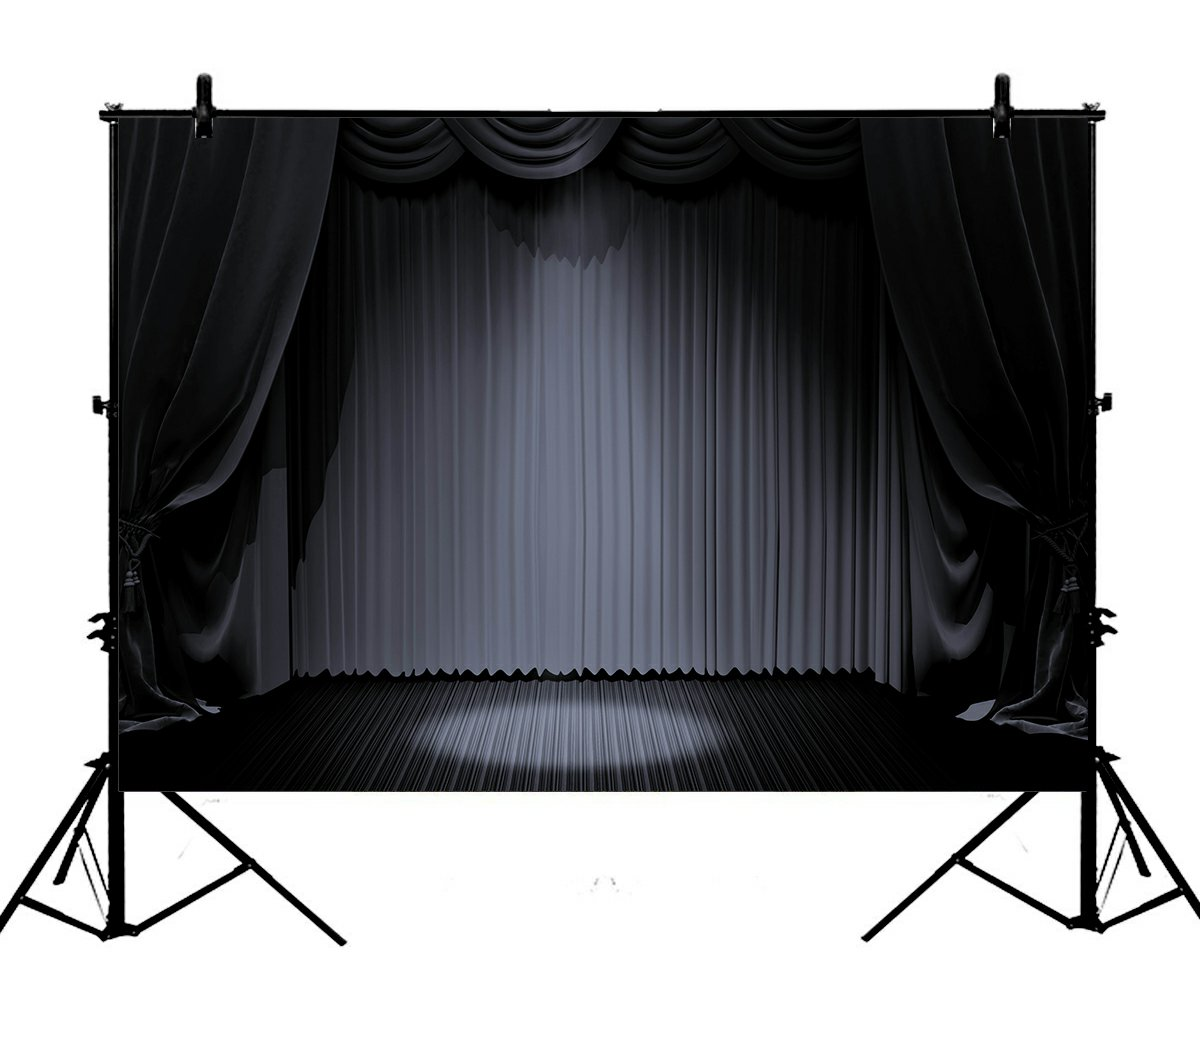 5x7ft Stage Lights Black Curtain Vintage Retro Floor Theater Polyester Photo Background Portrait Backdrop